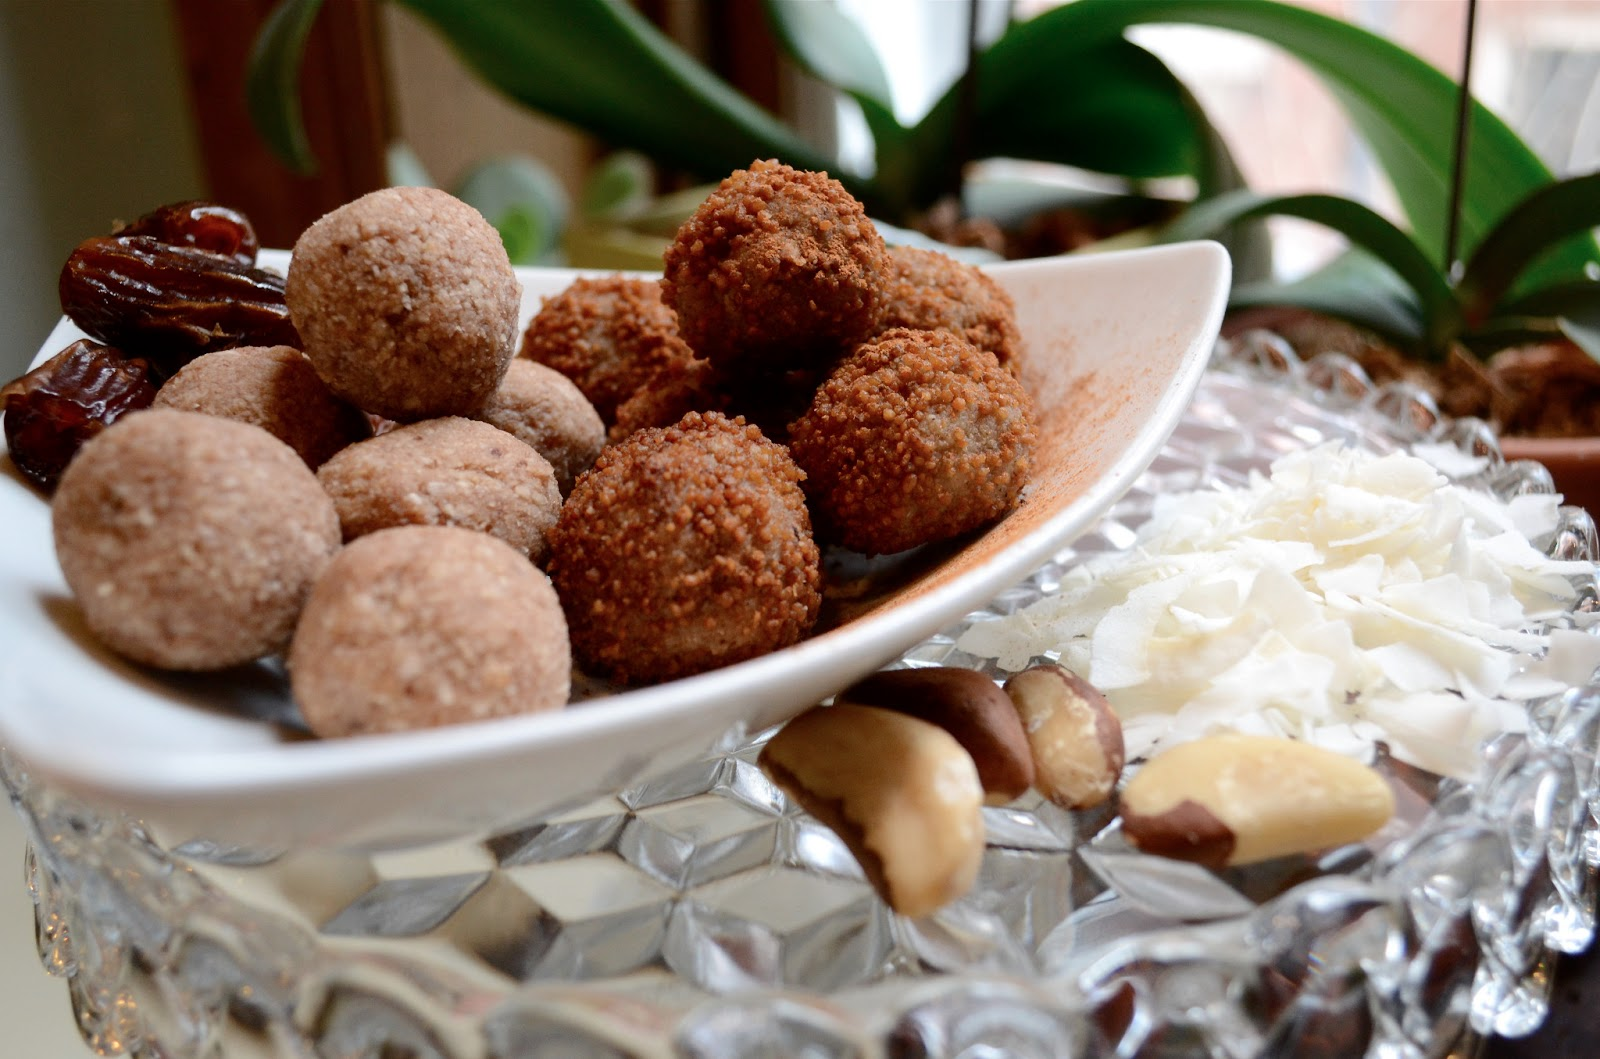 raw vegan doughnut hole dessert balls - healthy sweet treats